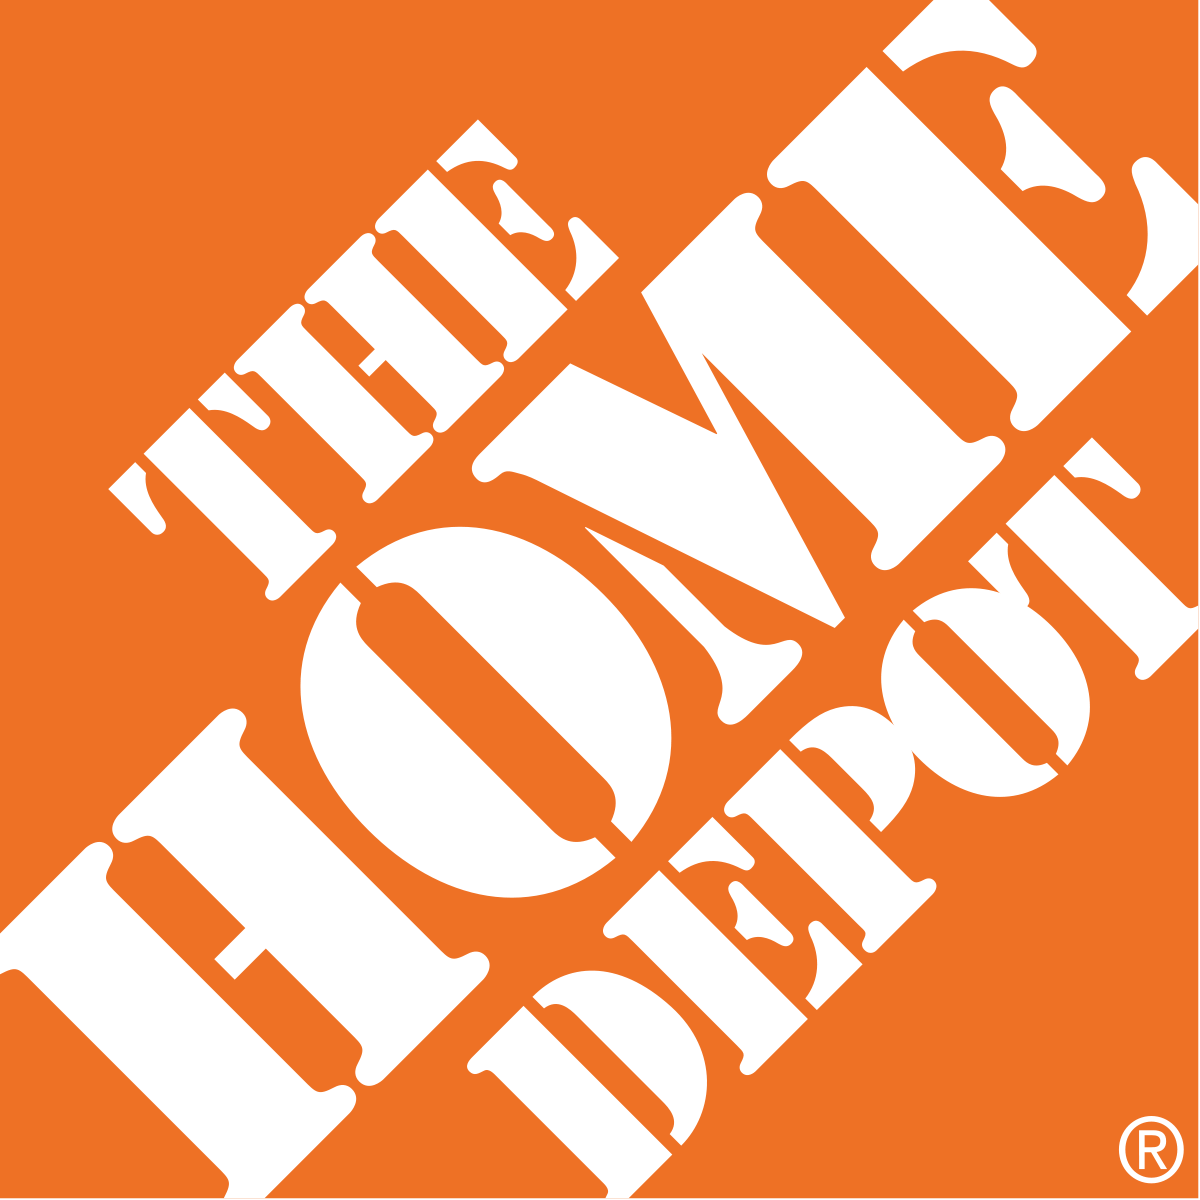 Home Depot or House Depot?.